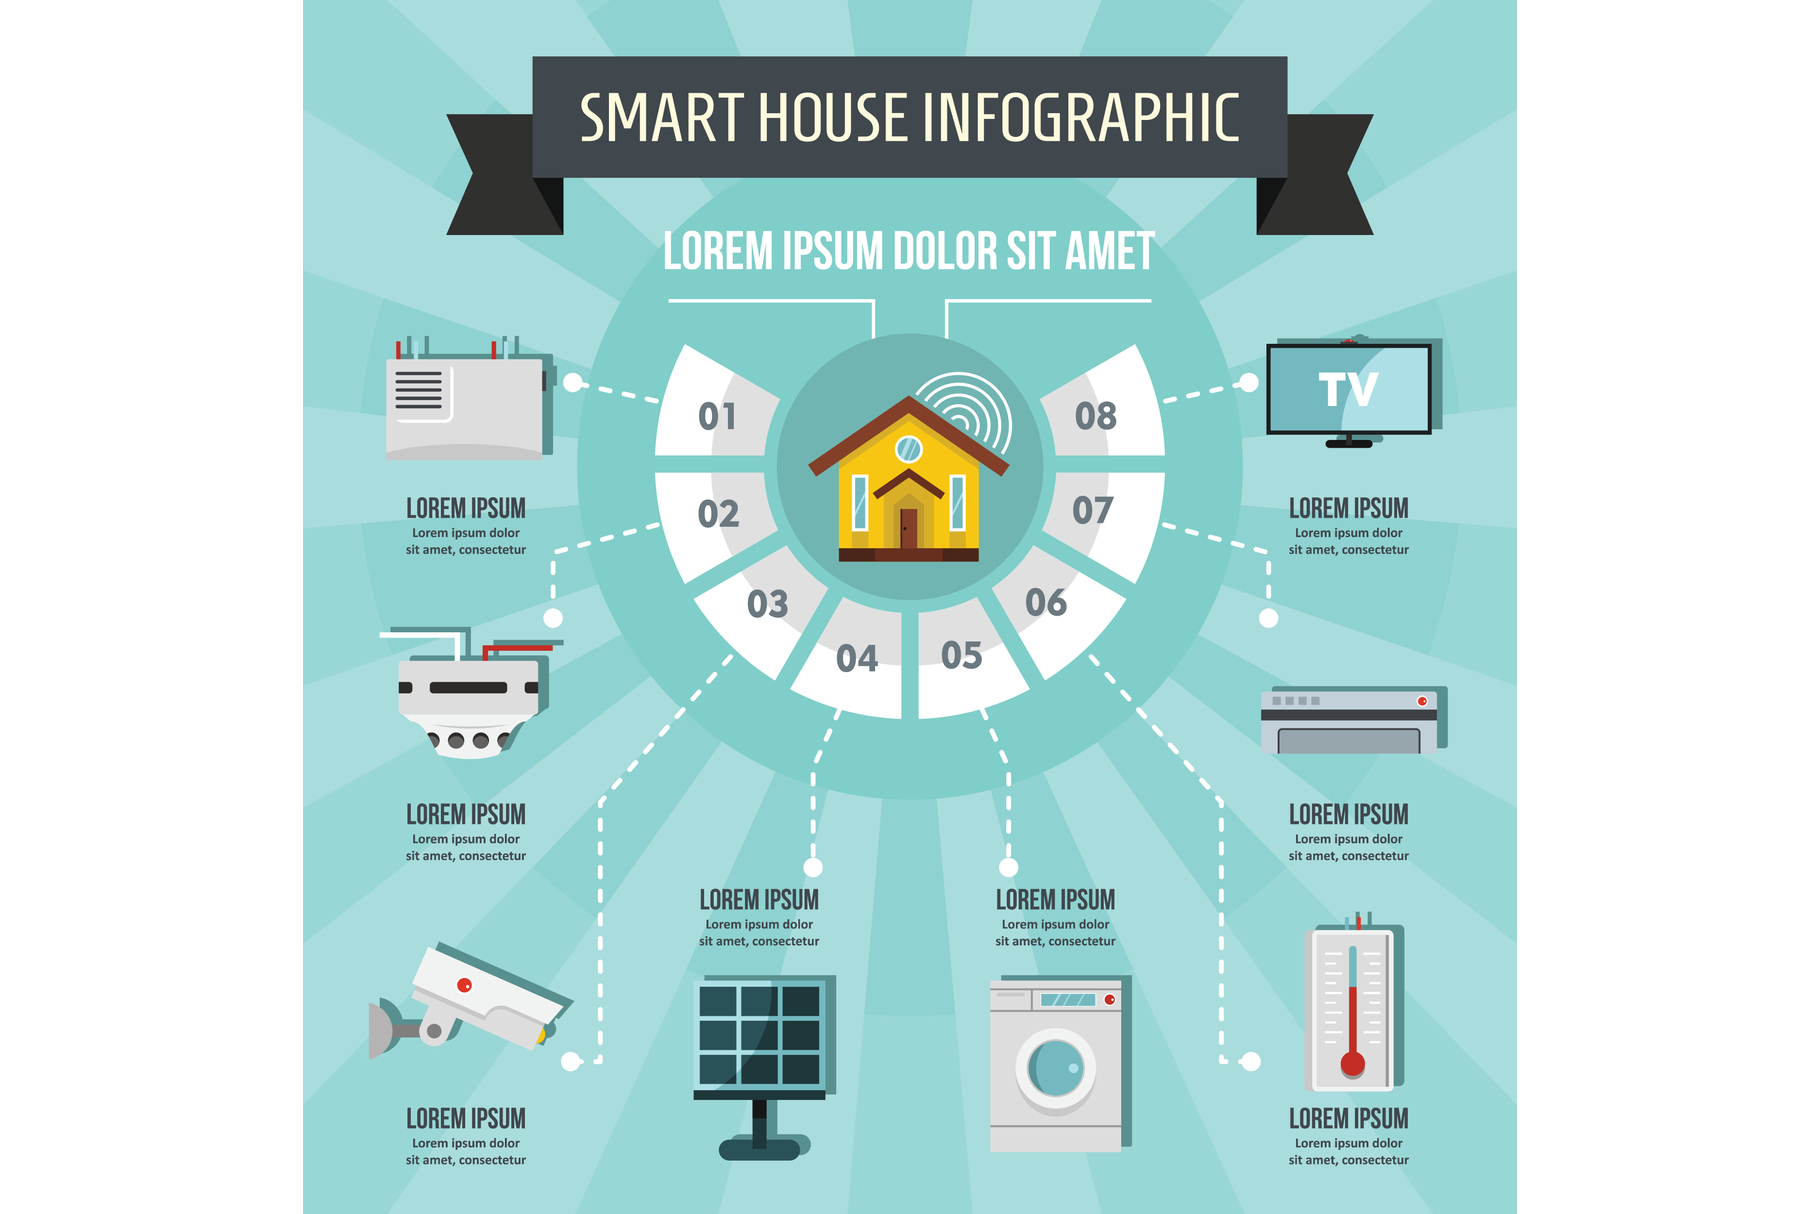 Smart house infographic concept, flat style example image 1